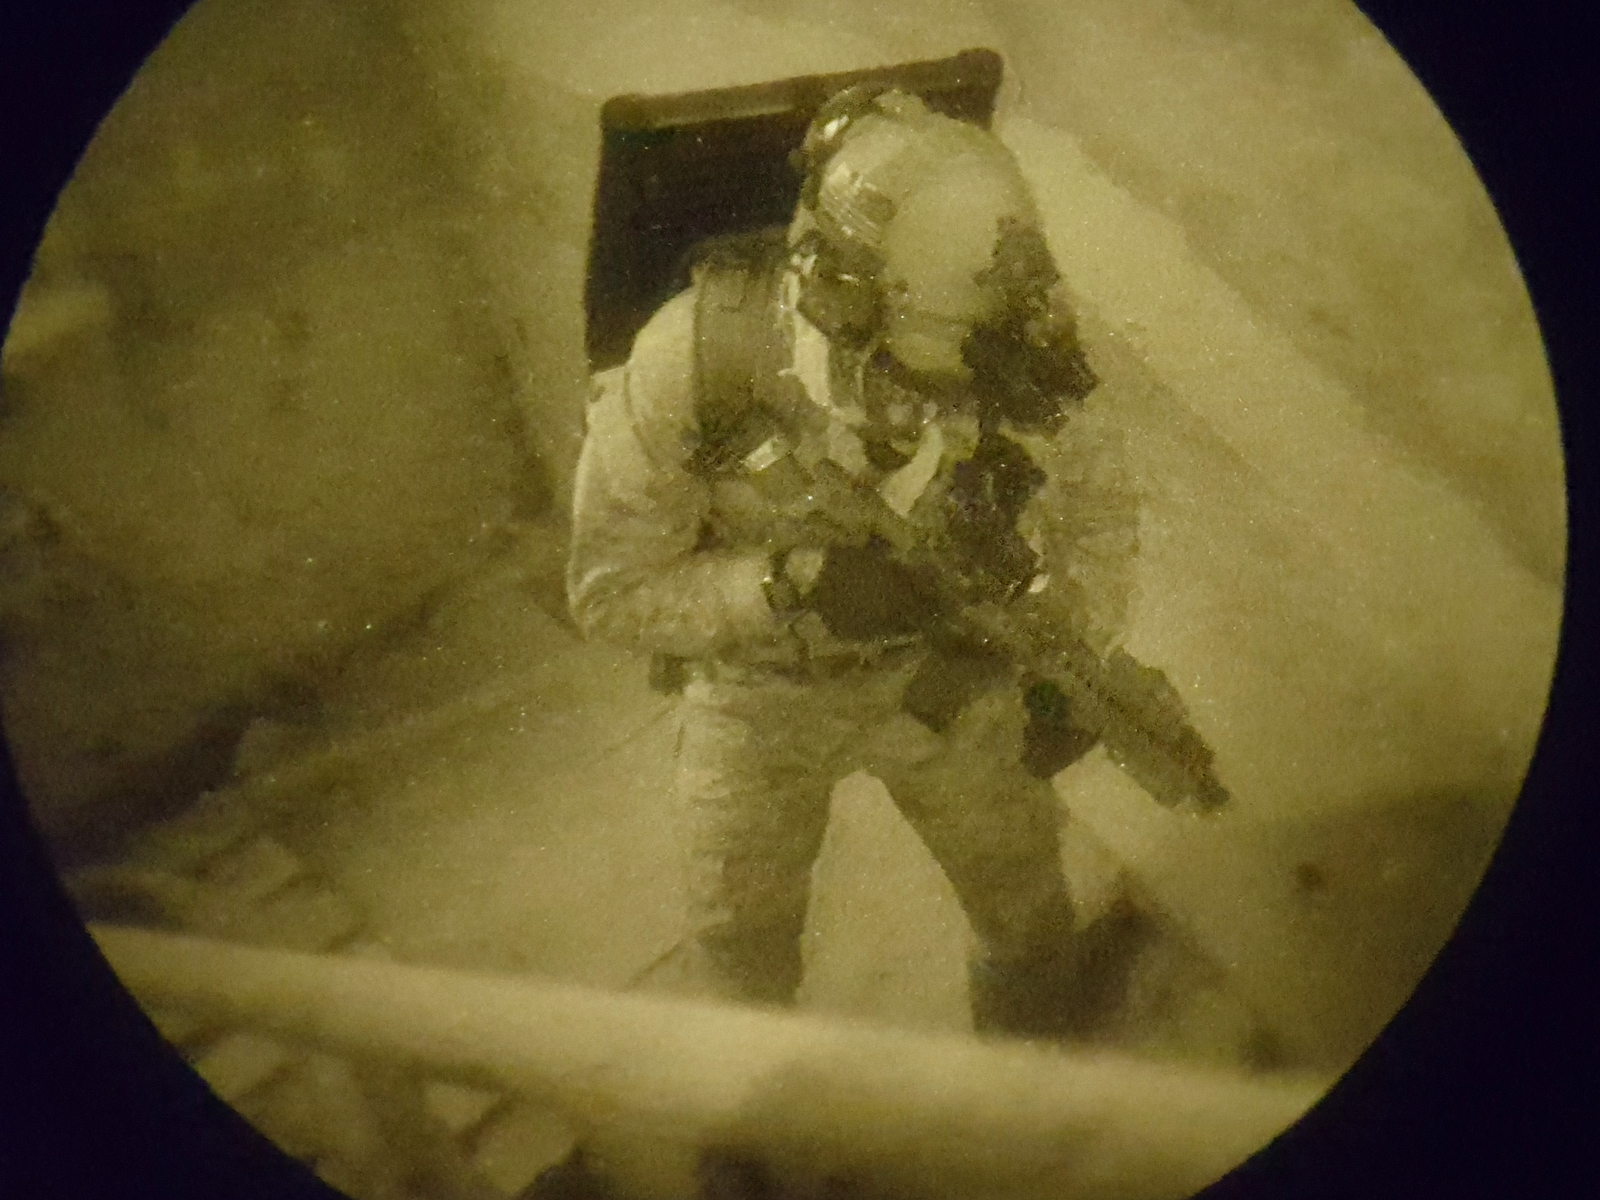 MG Action, Special Forces, FBI HRT, NVG, Night Vision Gen3+, Amberfilter